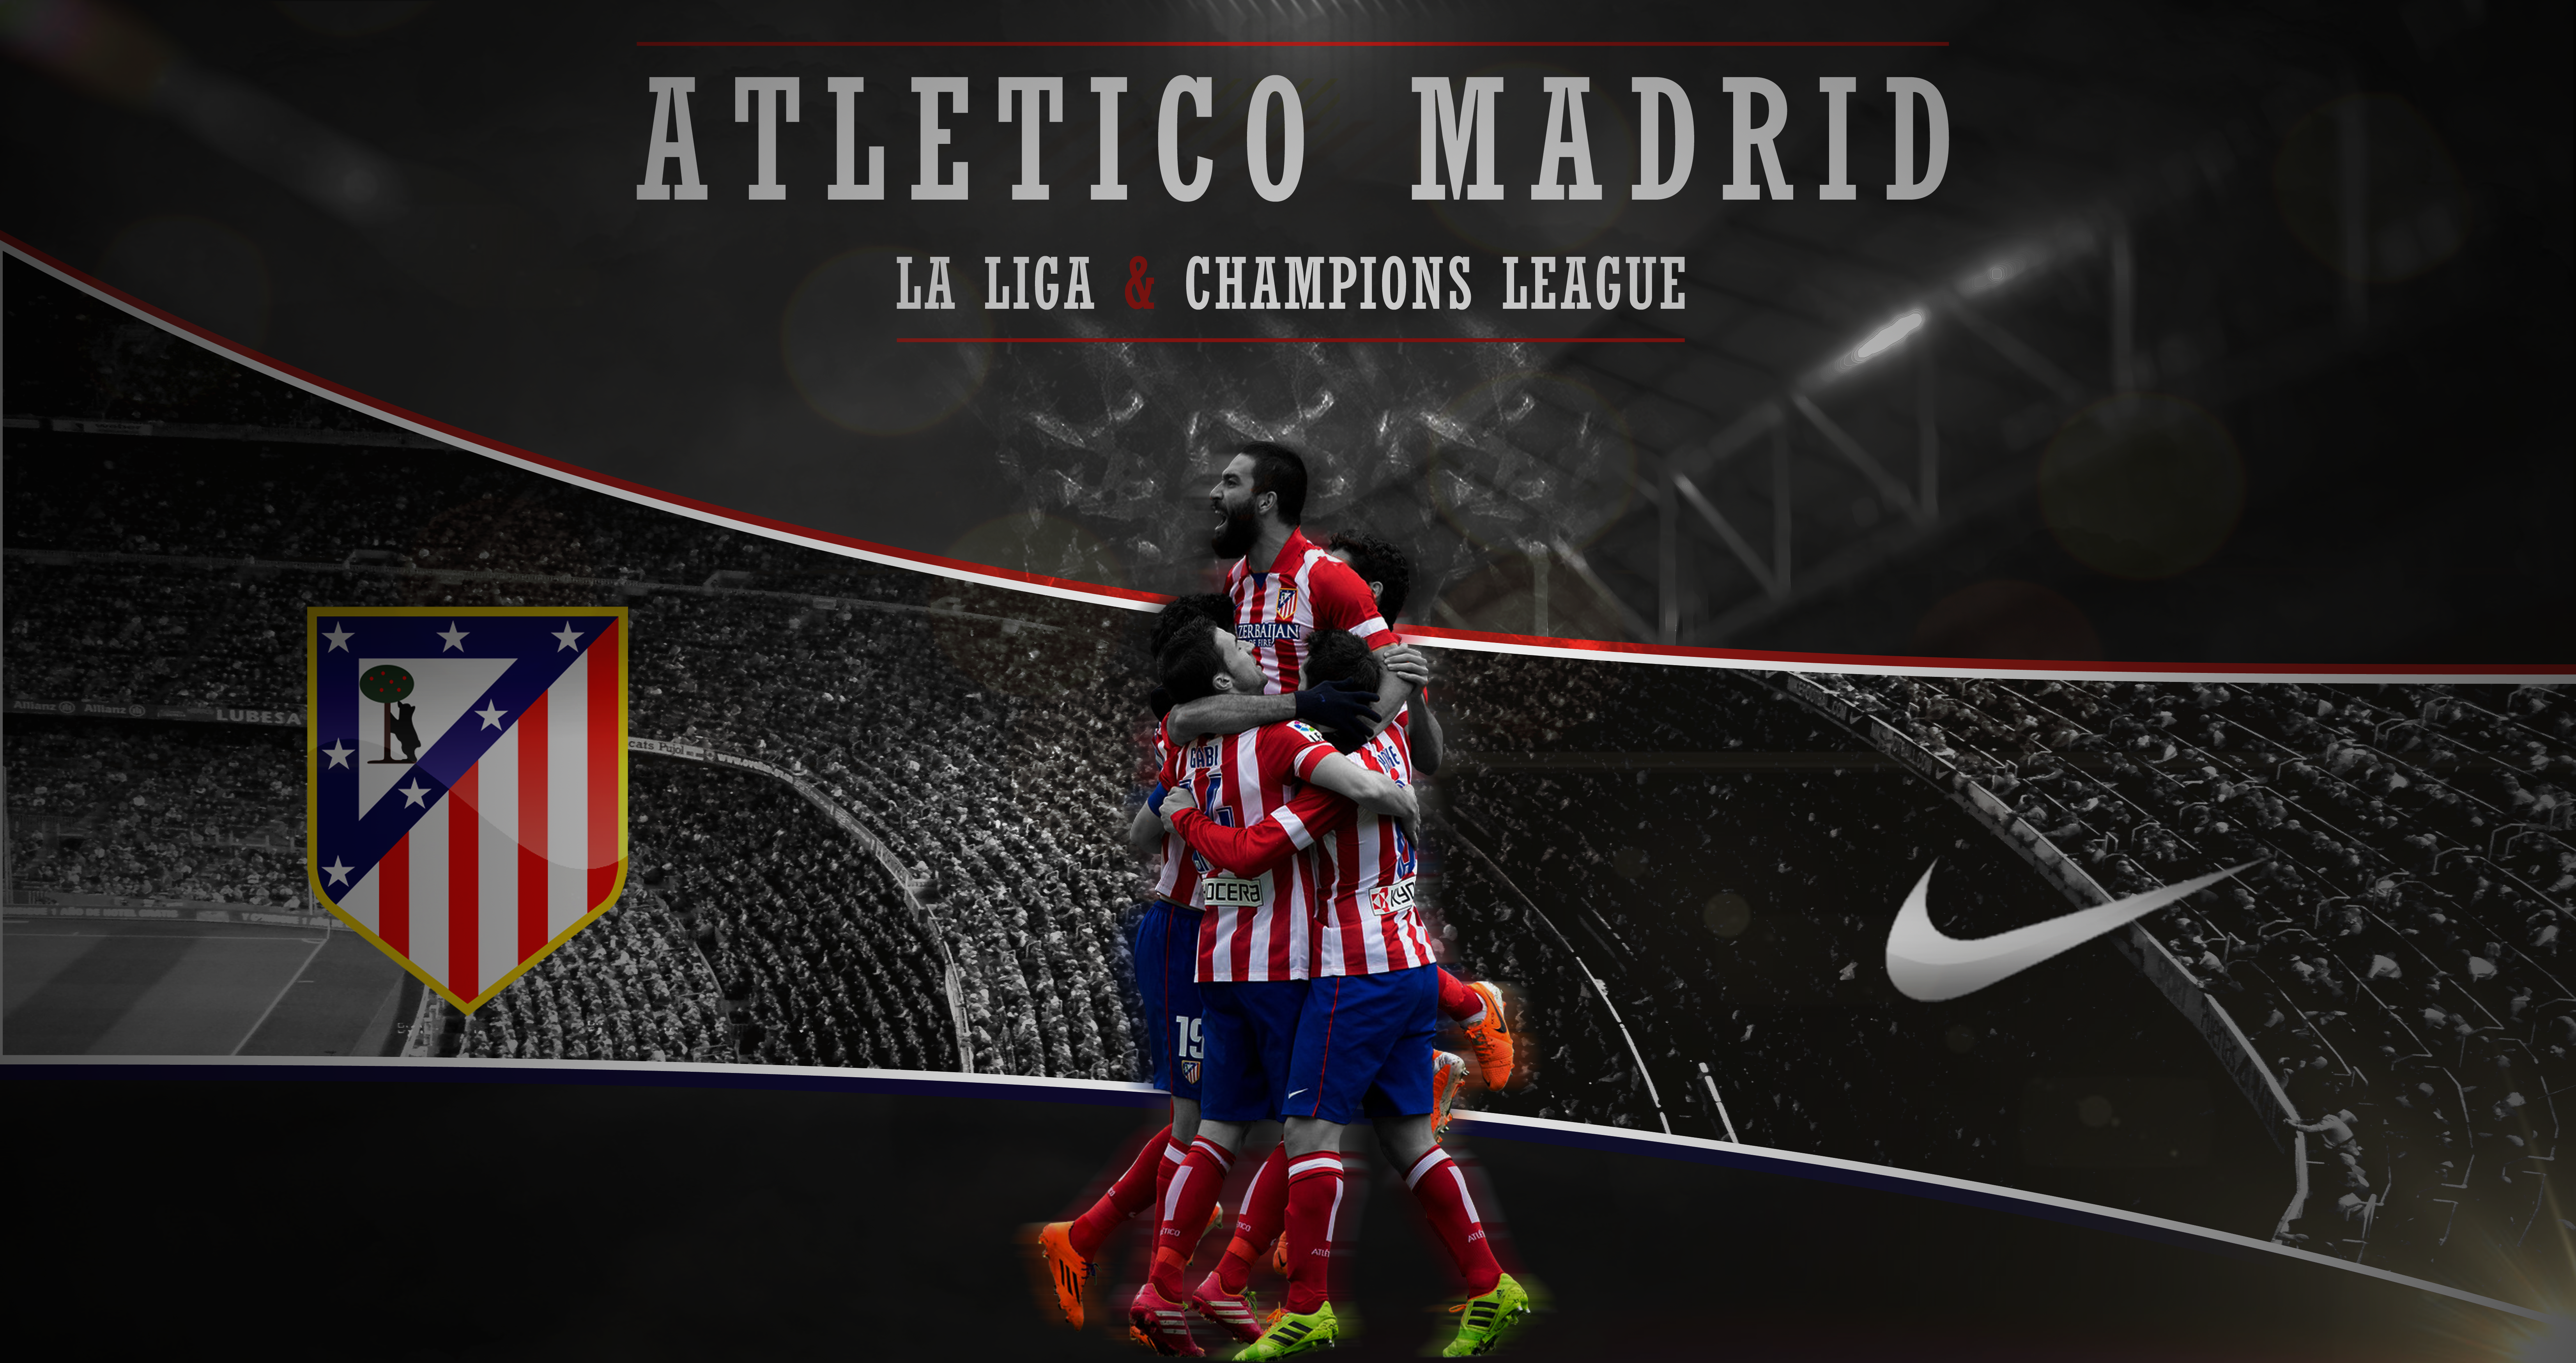 Atletico madrid by ozantopuz on deviantart atletico madrid by ozantopuz atletico madrid by ozantopuz voltagebd Image collections